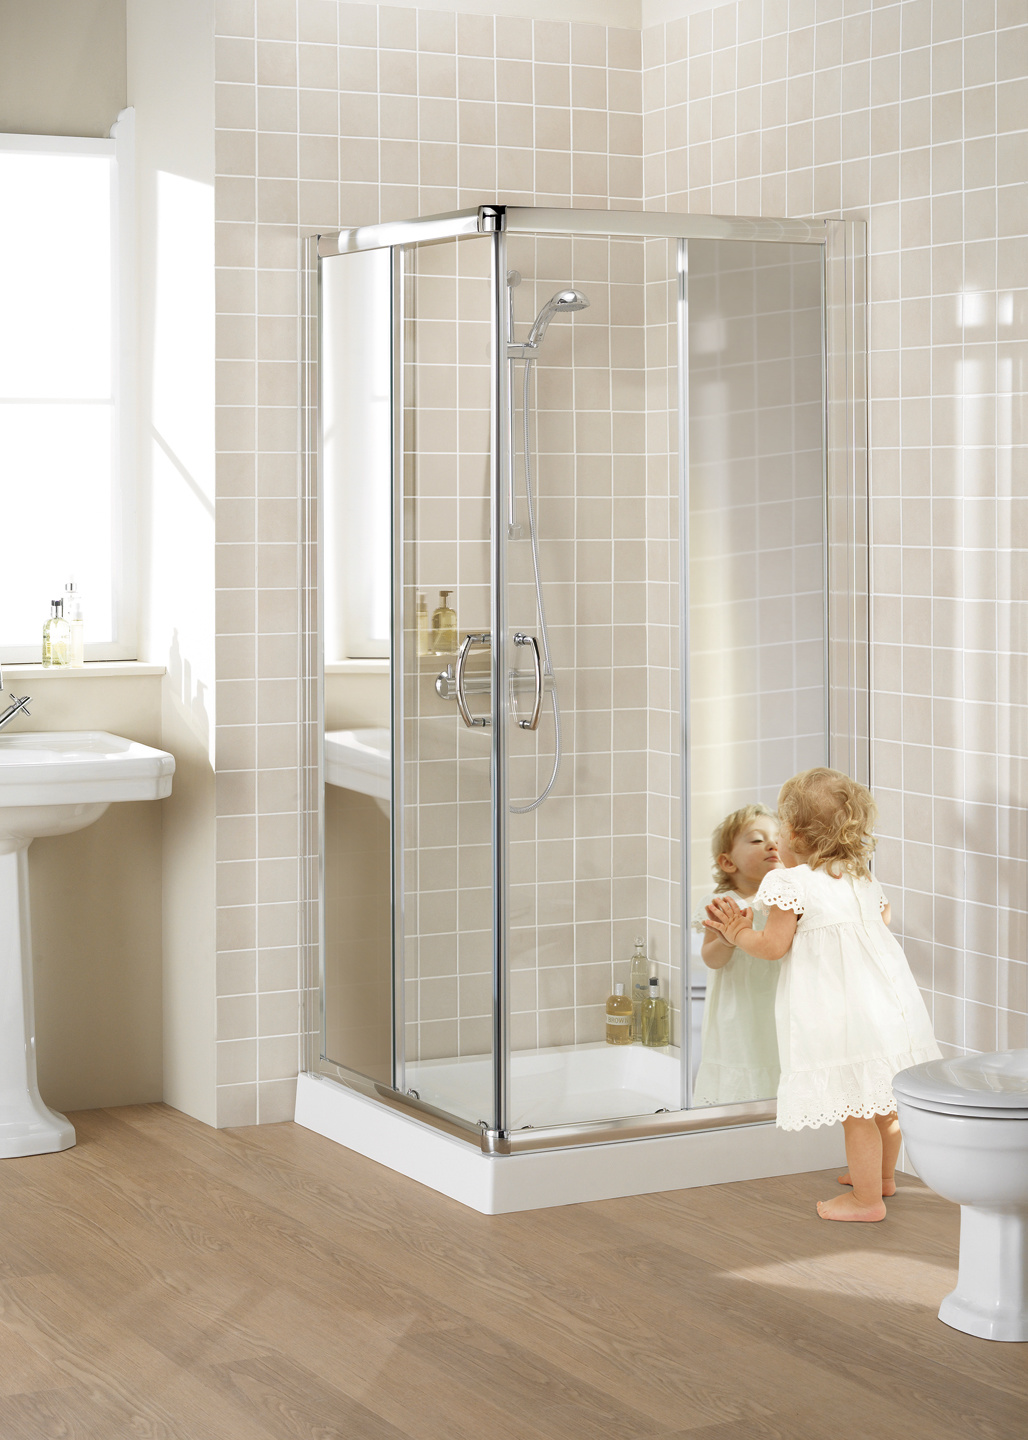 Mirror: Semi-Frameless Corner Entry shower enclosure